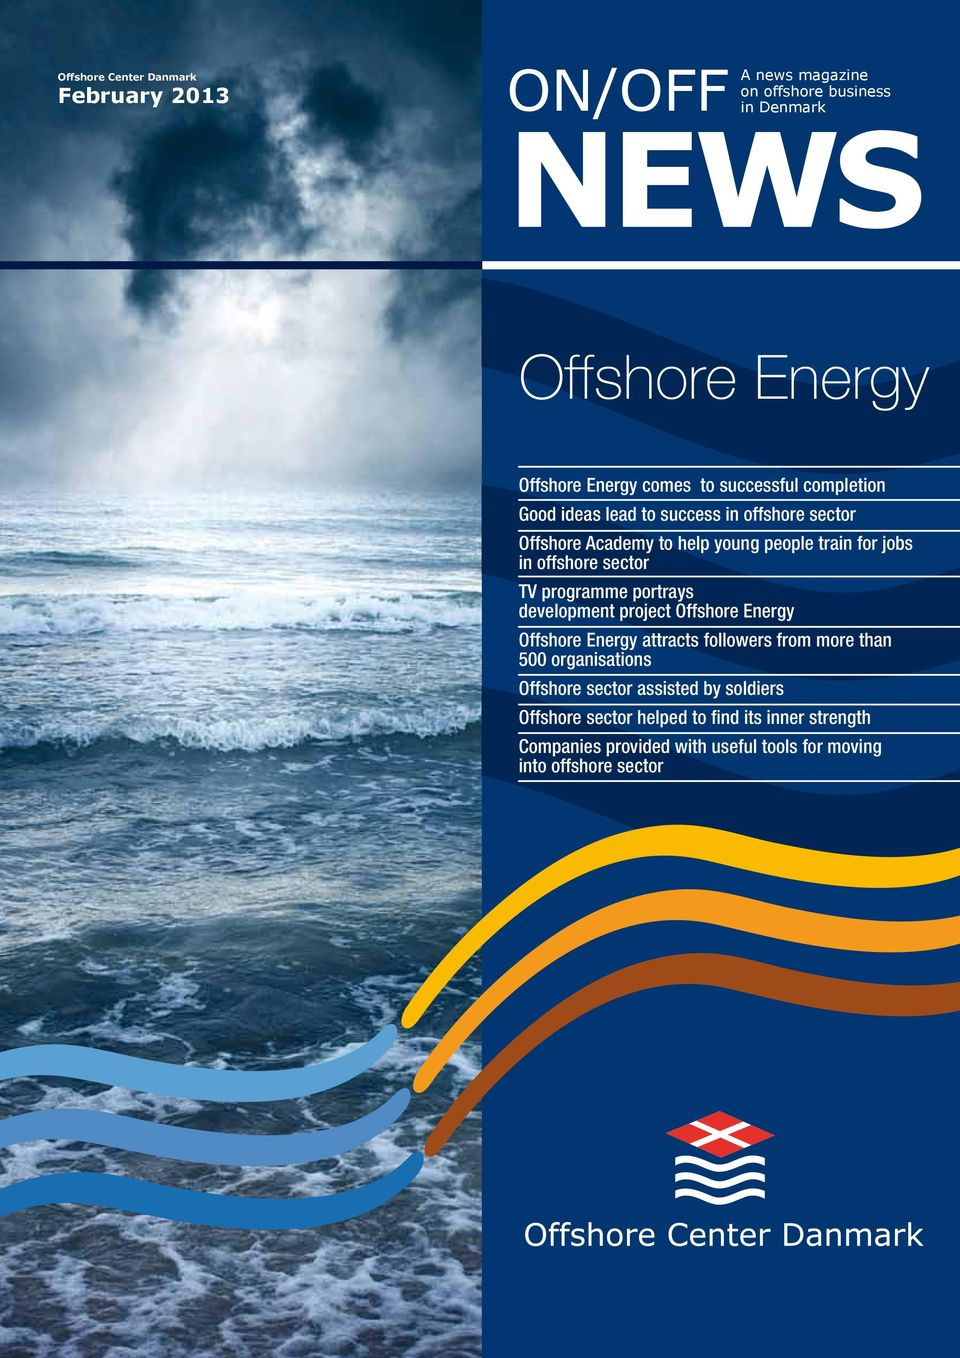 TV programme portrays development project Offshore Energy Offshore Energy attracts followers from more than 500 organisations Offshore